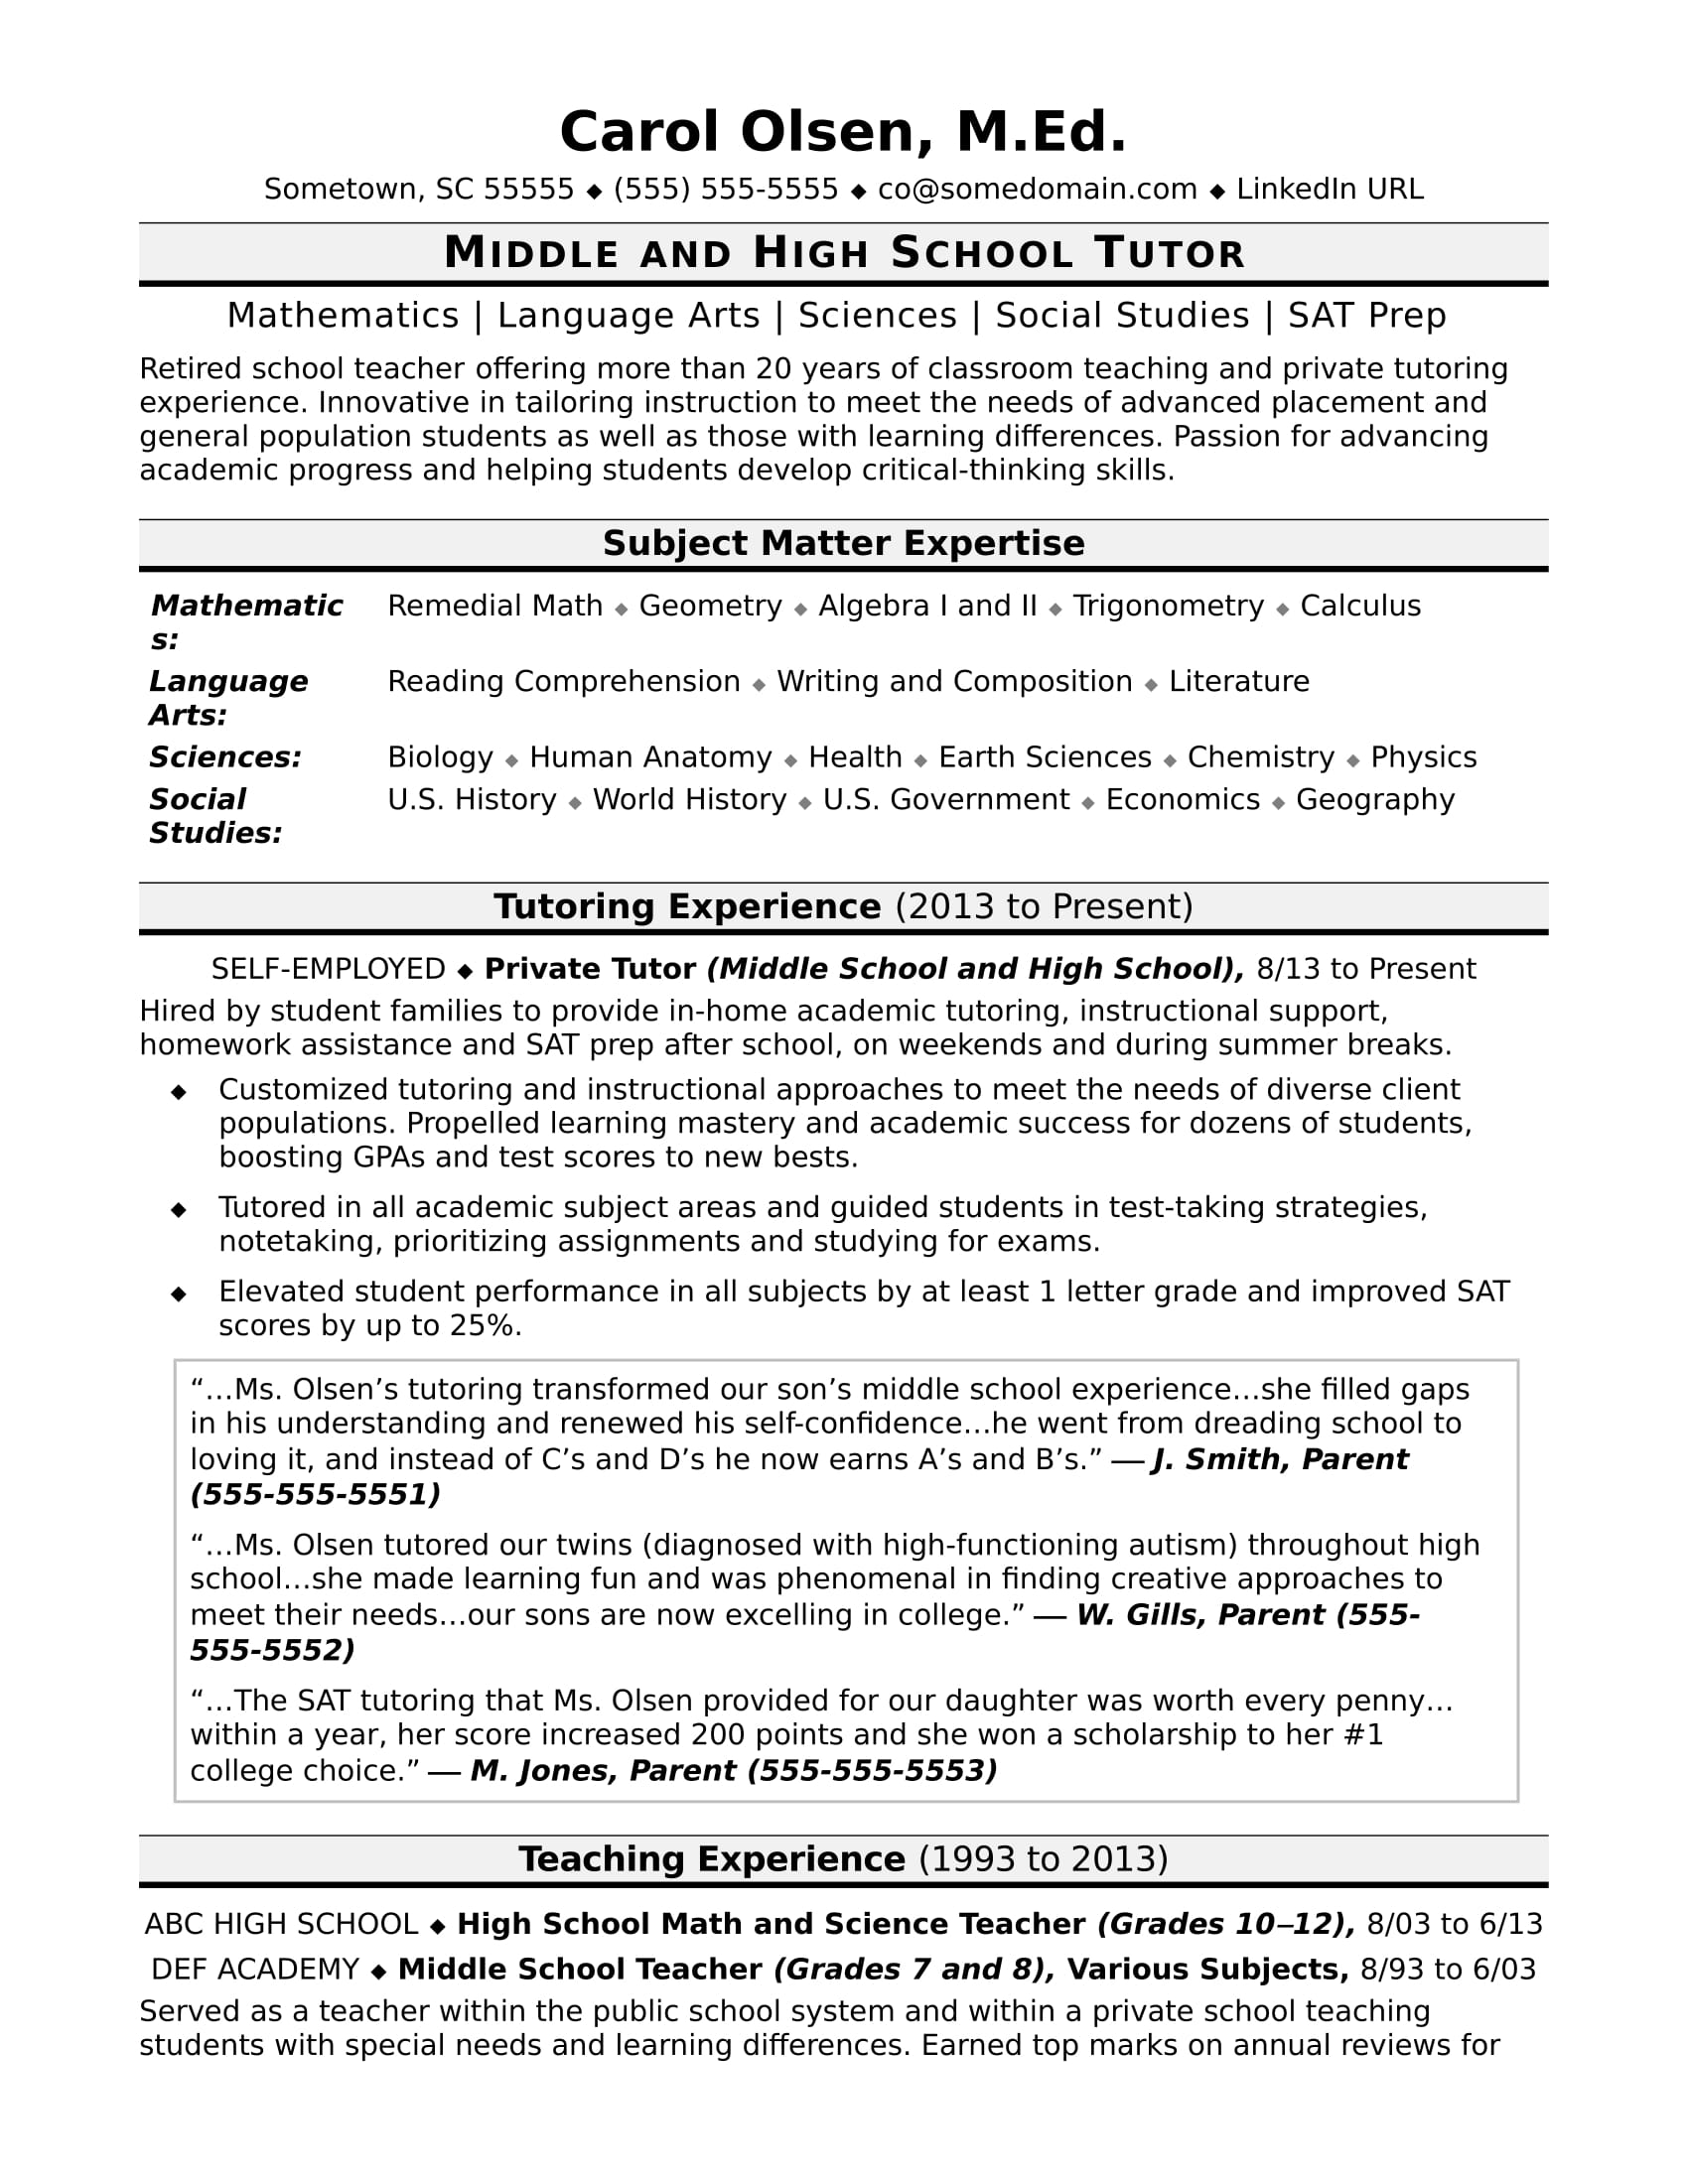 Tutor resume sample monster tutor resume sample yelopaper Gallery